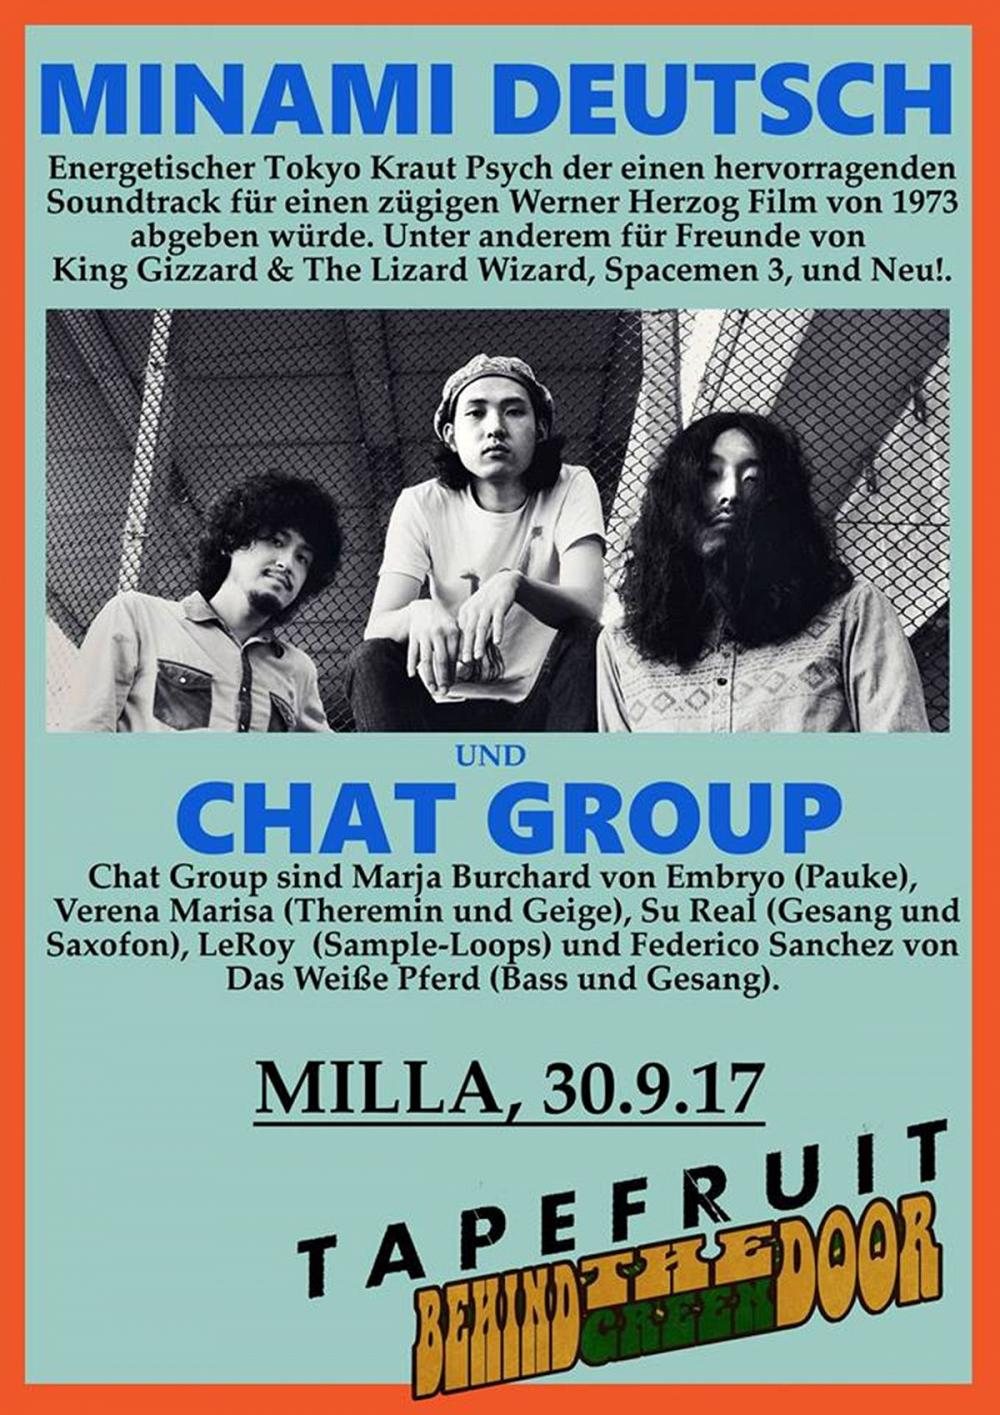 Tapefruit Konzert: Minami Deutsch + Chat Group | 30.09.2017 @ Milla Club